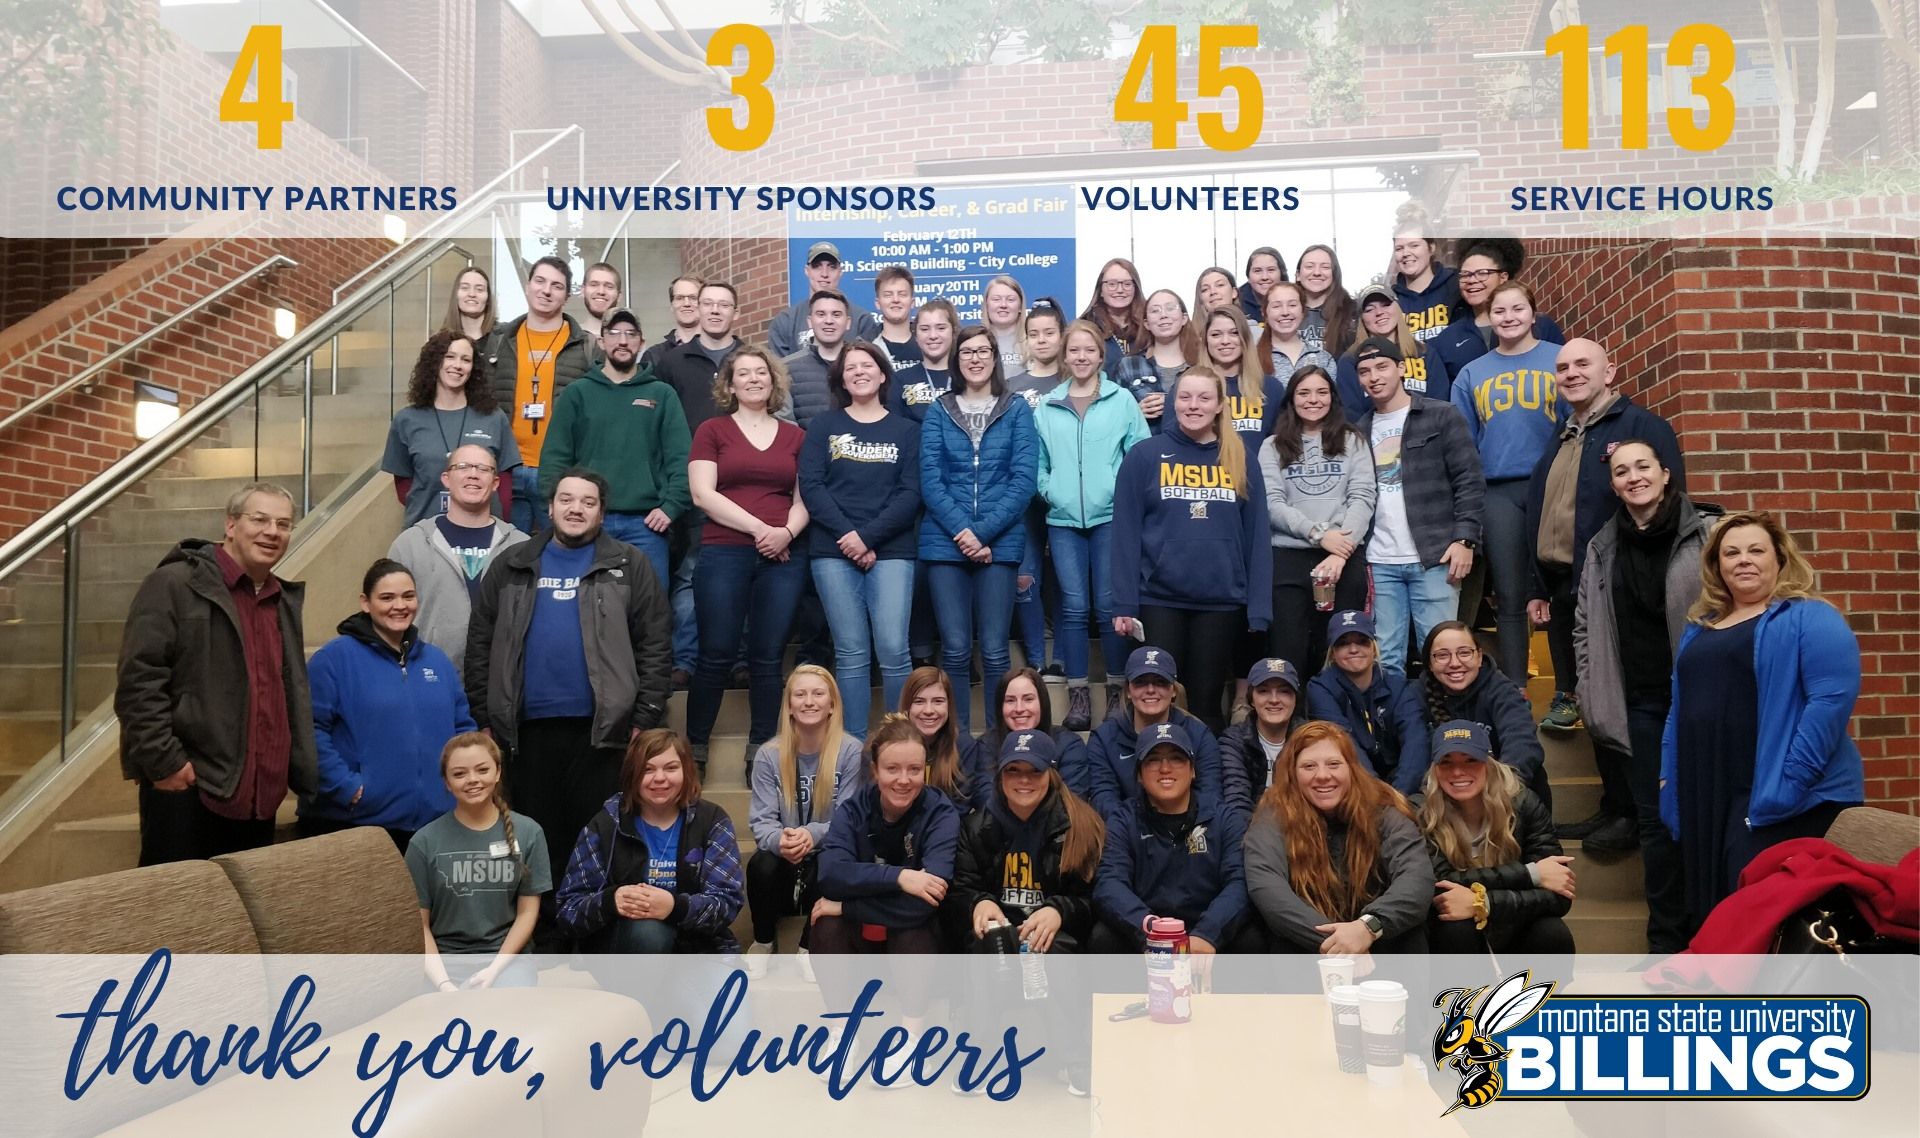 4 COMMUNITY PARTNERS 3 UNIVERSITY PARTNERS 45 VOLUNTEERS 113 SERVICE HOURS THANK YOU VOLUNTEERS